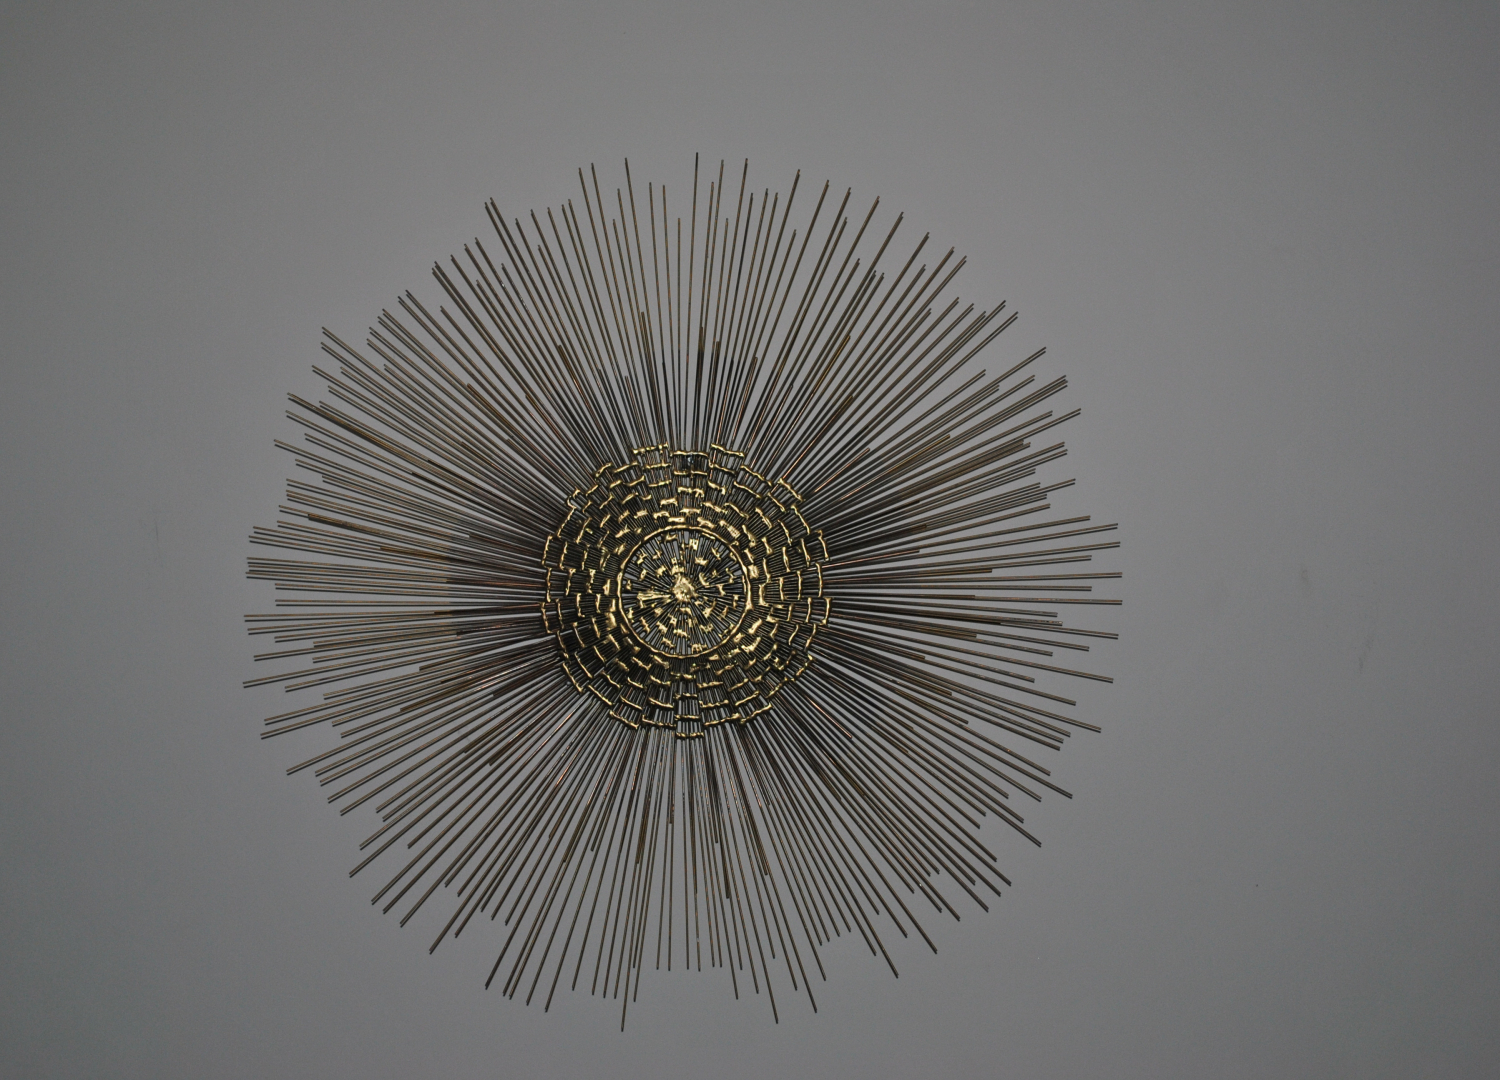 Brass Sunburst Wall Sculpture 1